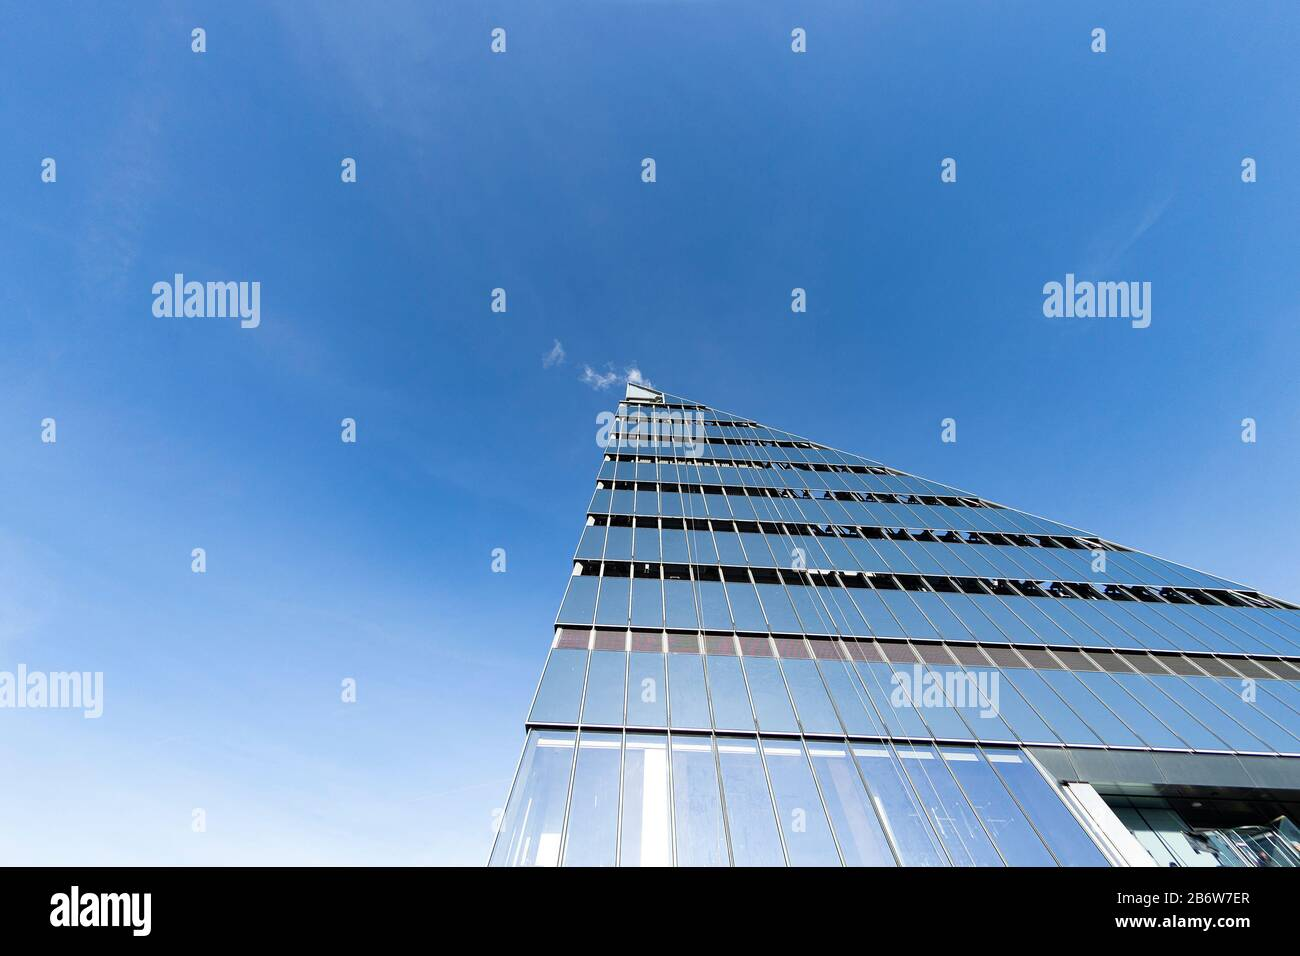 New York, United States. 11th Mar, 2020. View of top of the building from The Edge the highest Western Hemisphere outdoor sky deck during opening at 30 Hudson Yards (Photo by Lev Radin/Pacific Press) Credit: Pacific Press Agency/Alamy Live News Stock Photo